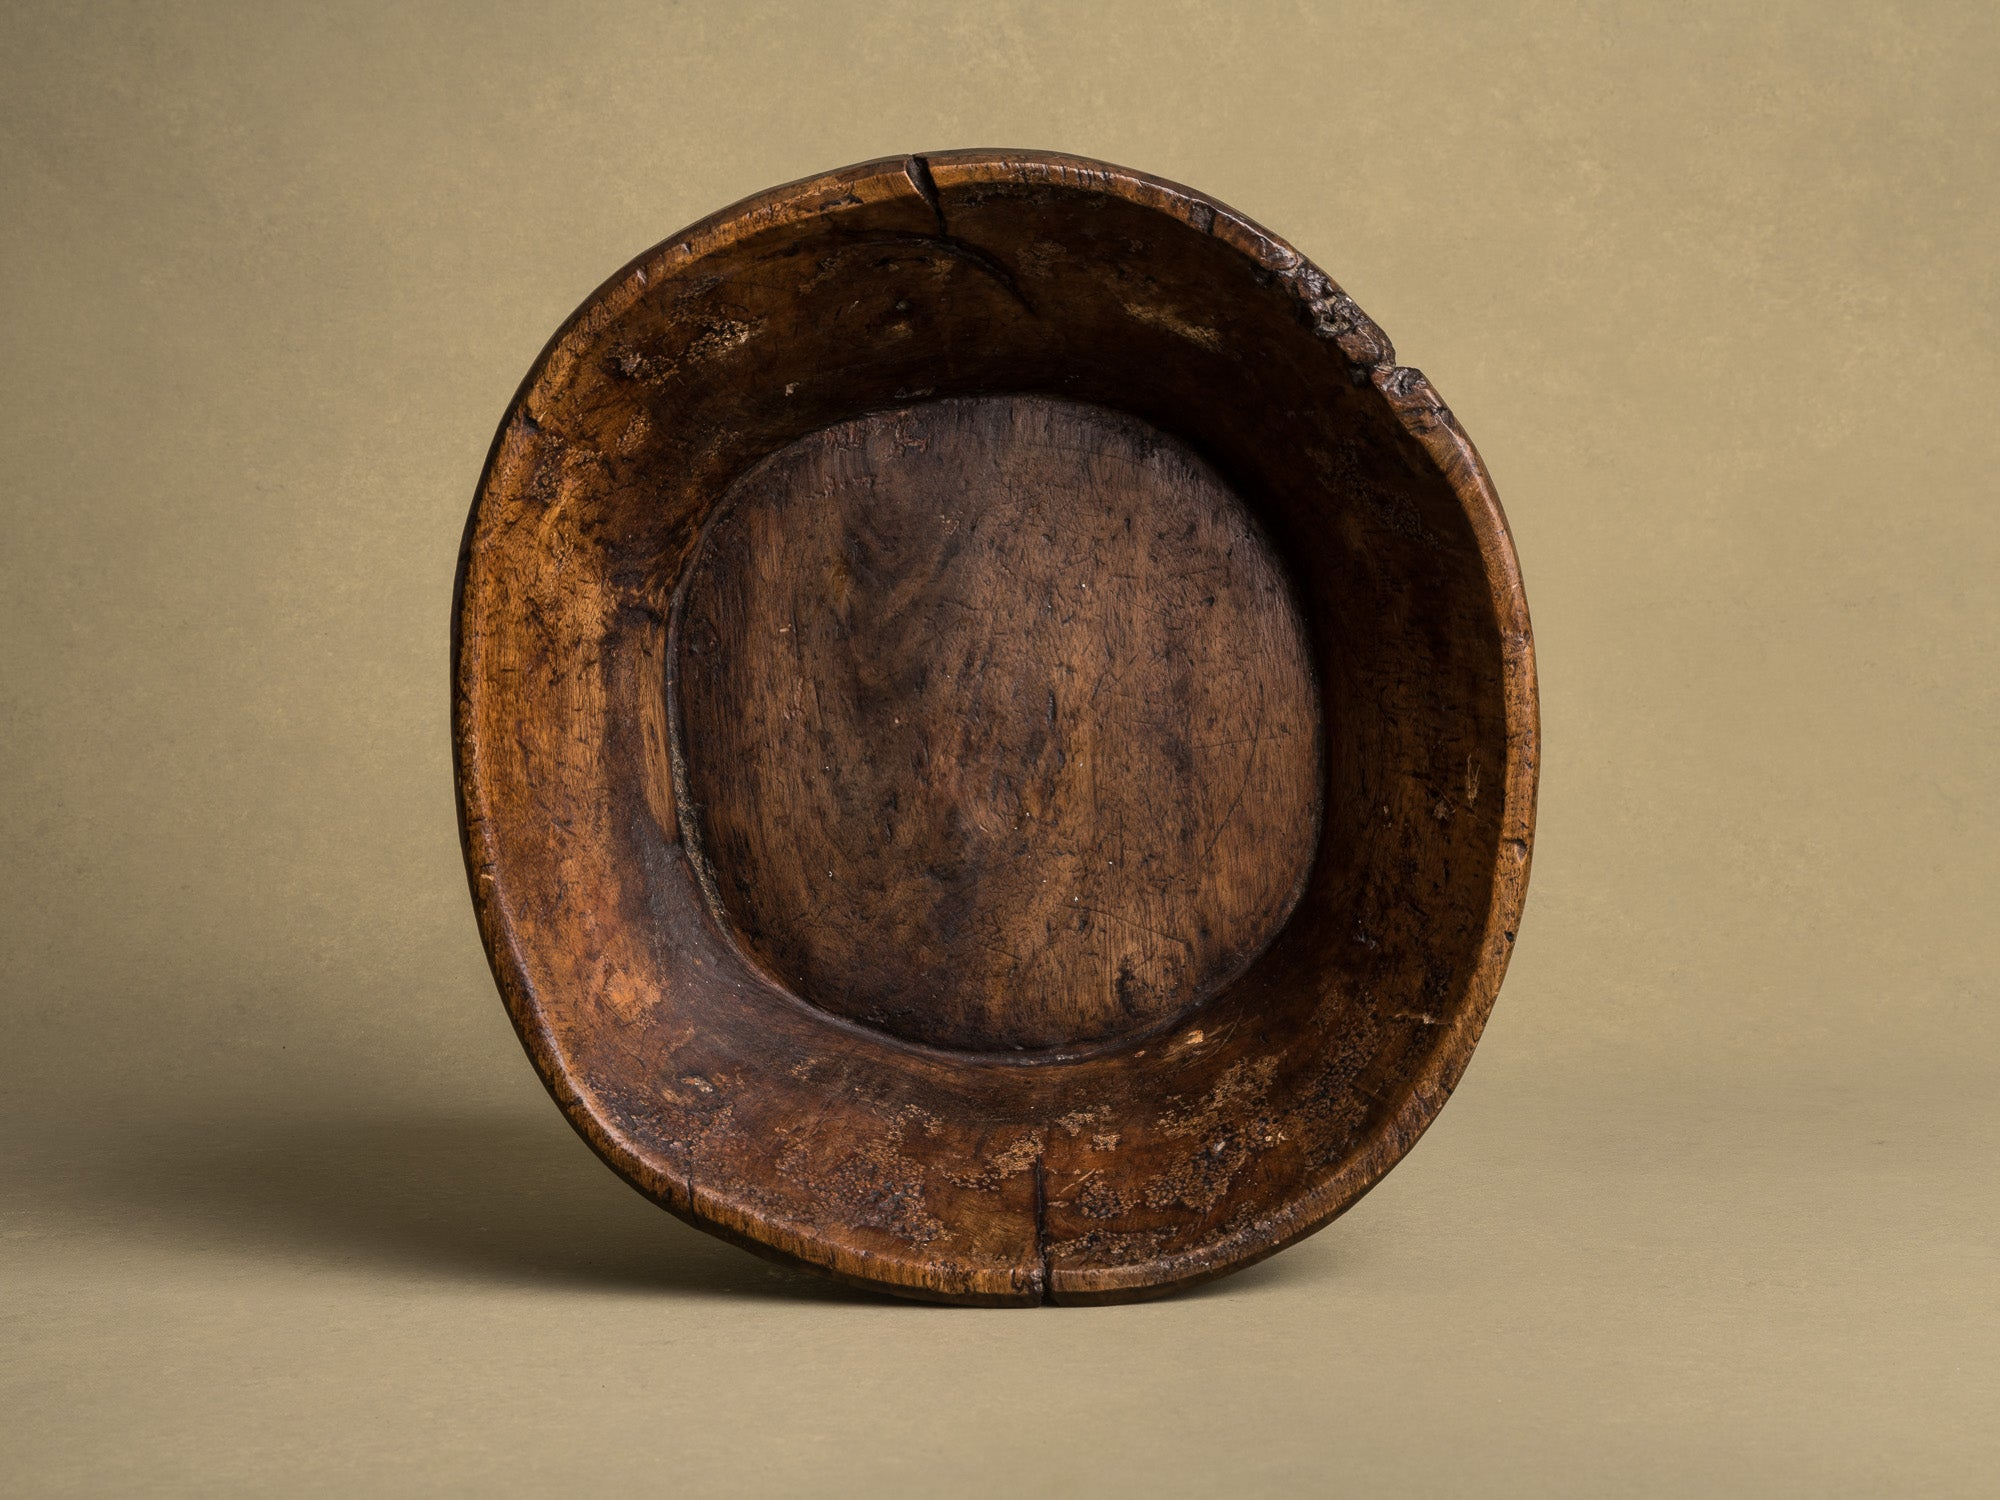 Coupe monoxyle auvergnate en noyer, art paysan, France (XIXe siècle)..circular carved Auvergne walnut wooden bowl, Peasant art, France (19th century)